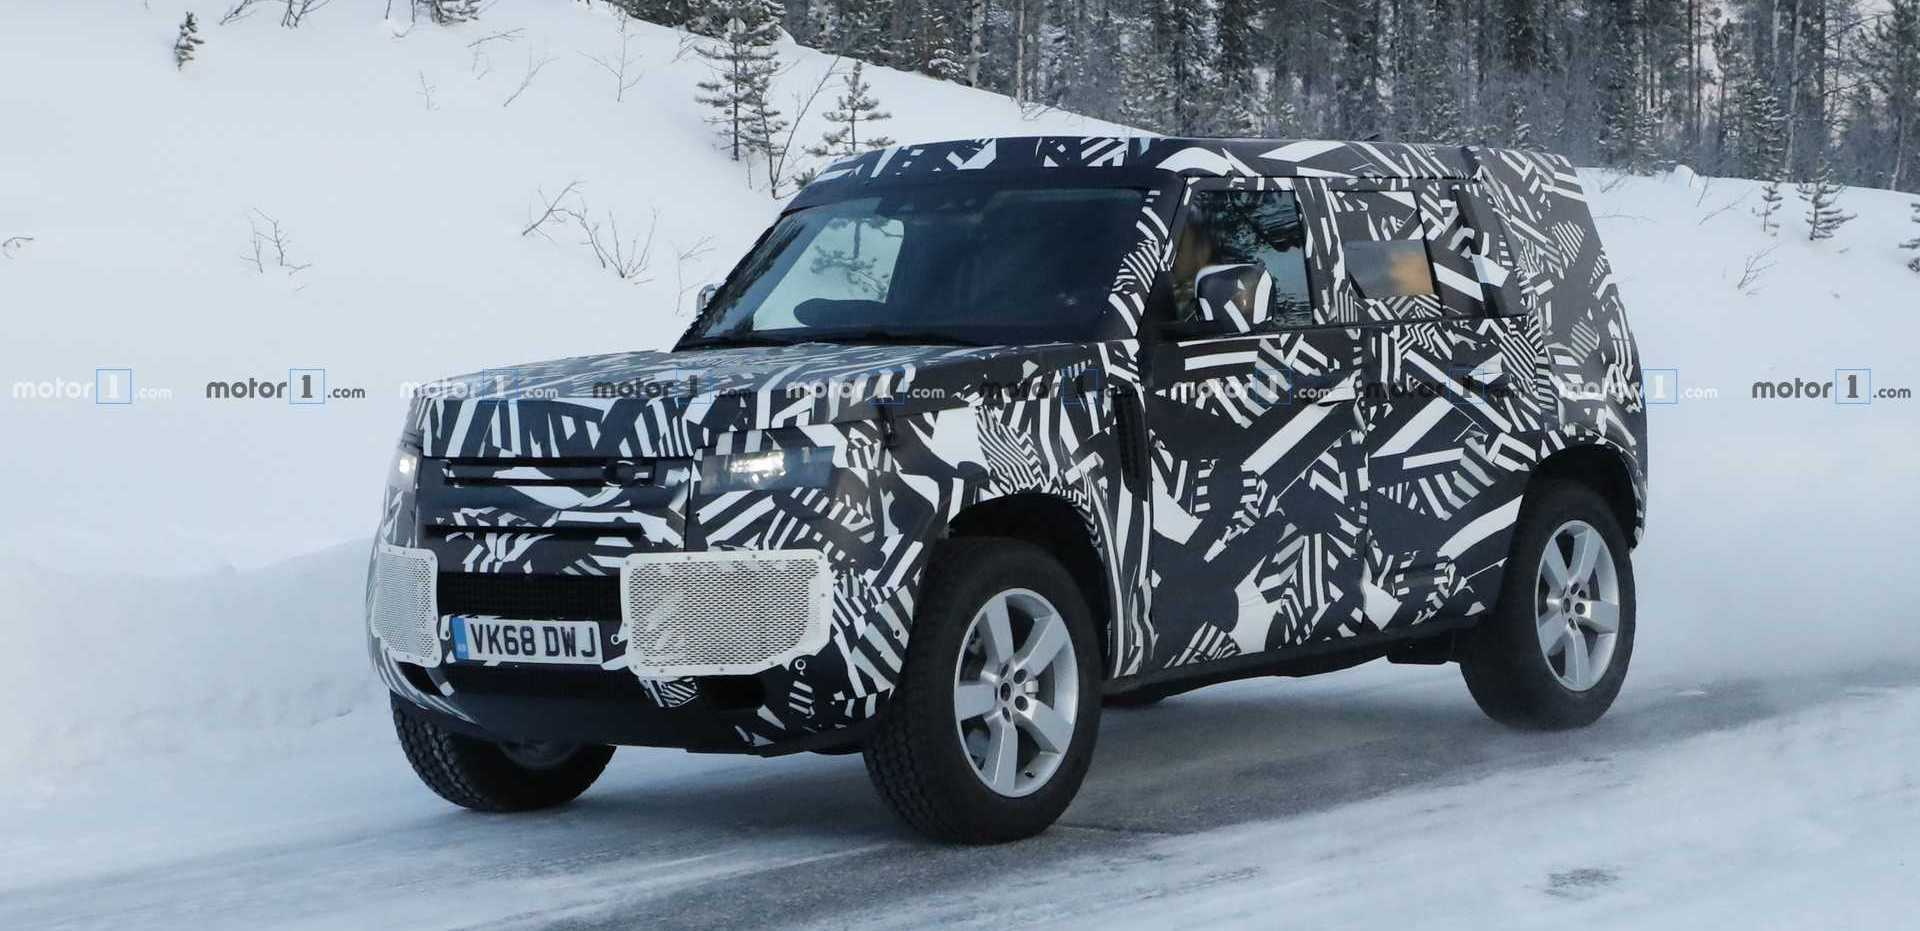 2020 Land Rover Defender Returns In Snowy Spy Photos